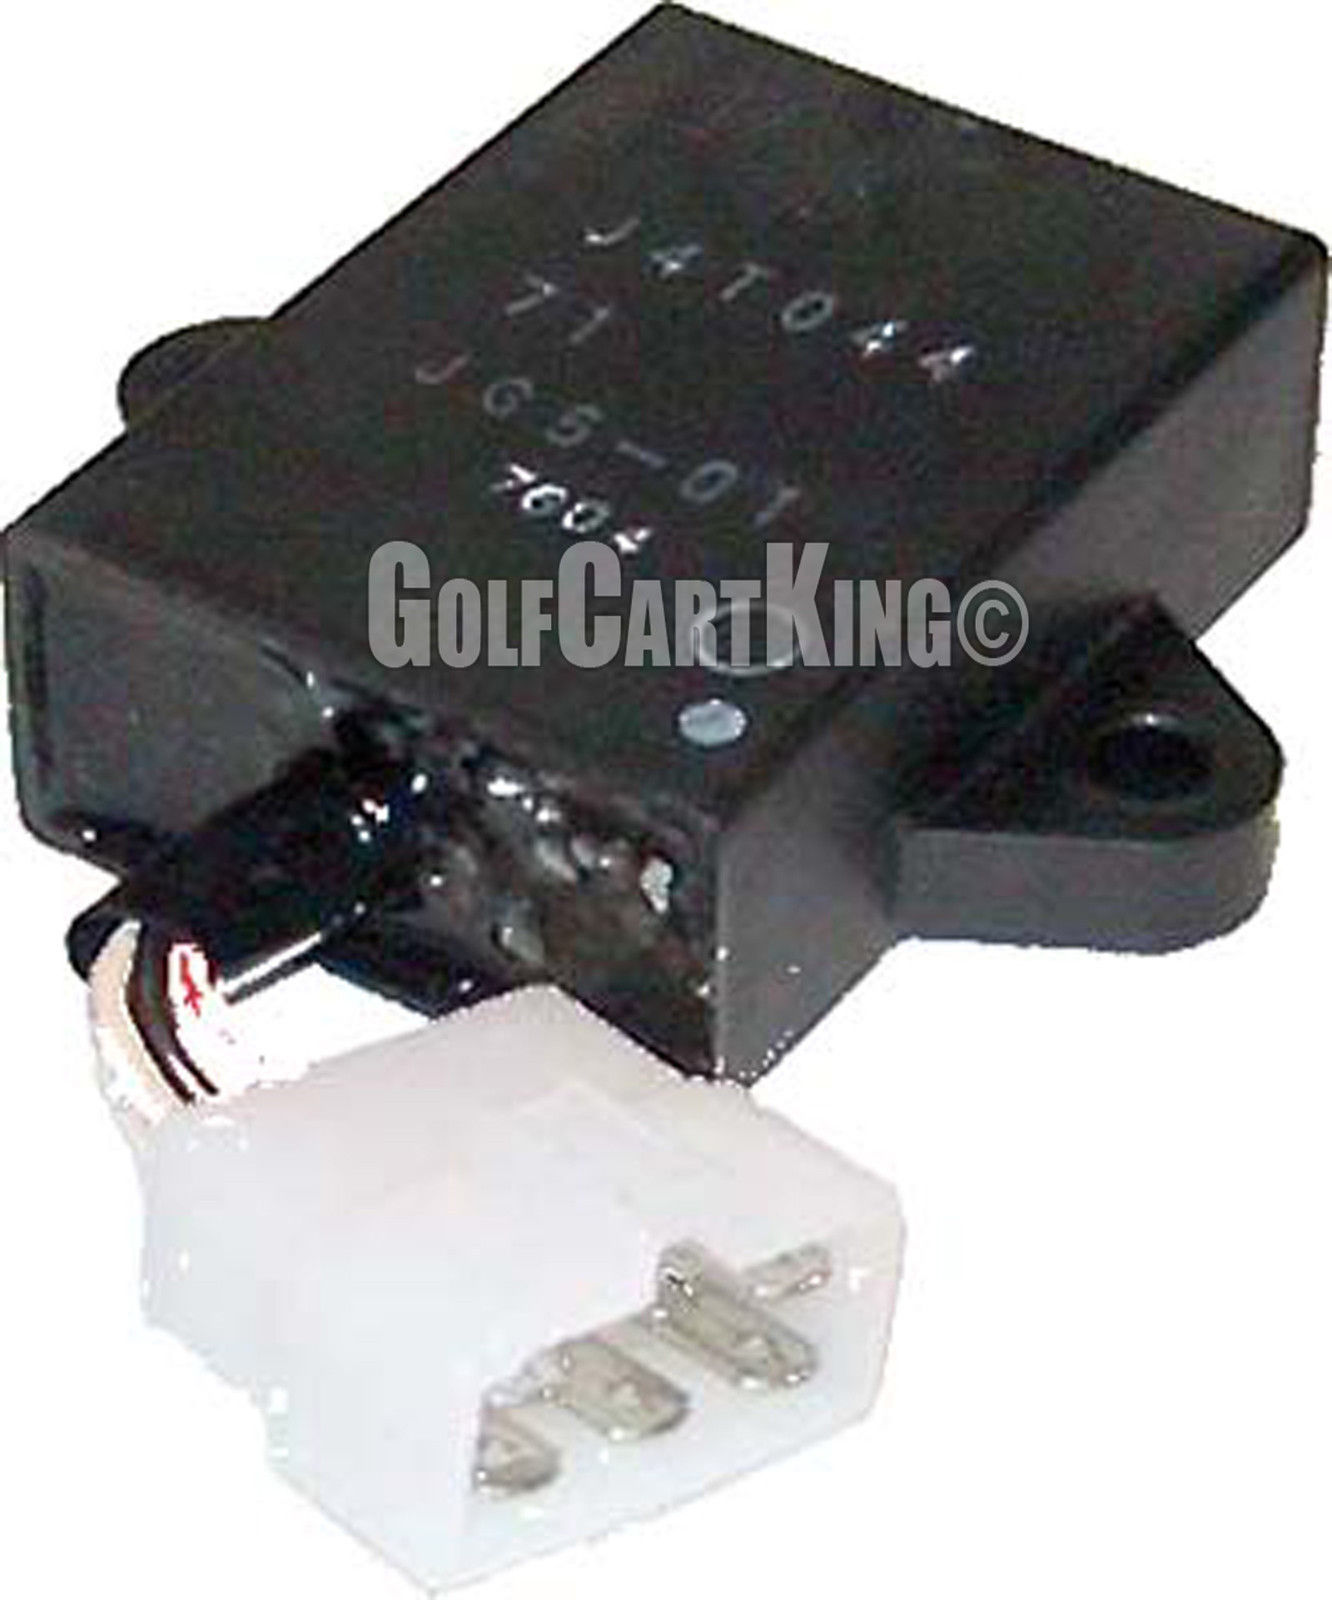 Yamaha G2 Ignitor Wiring Harness Real Diagram Electric Golf Cart G27e G9 746839702783 Ebay Rh Com Electrical Schematic G16 Engine